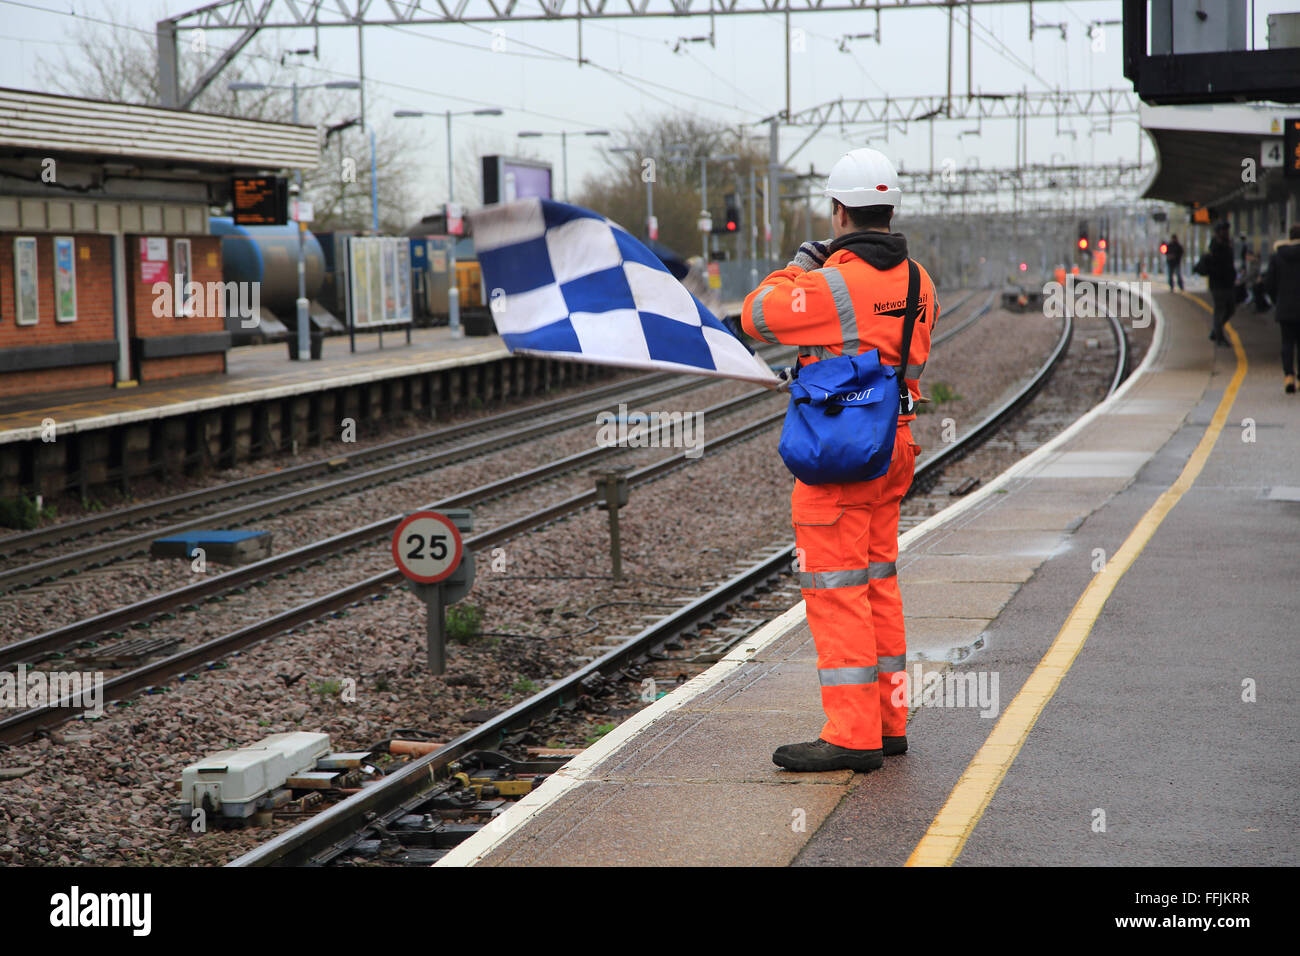 Railway worker wearing high visibility orange clothing holds blue and white checkered safety flag, Colchester, Essex, - Stock Image